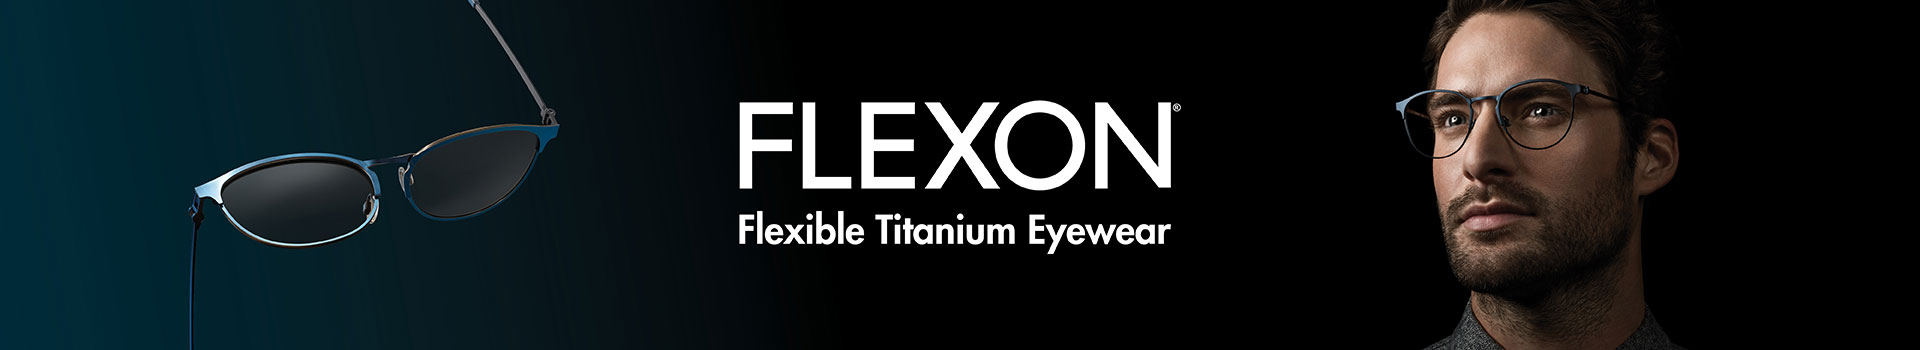 Flexon Sunglasses banner